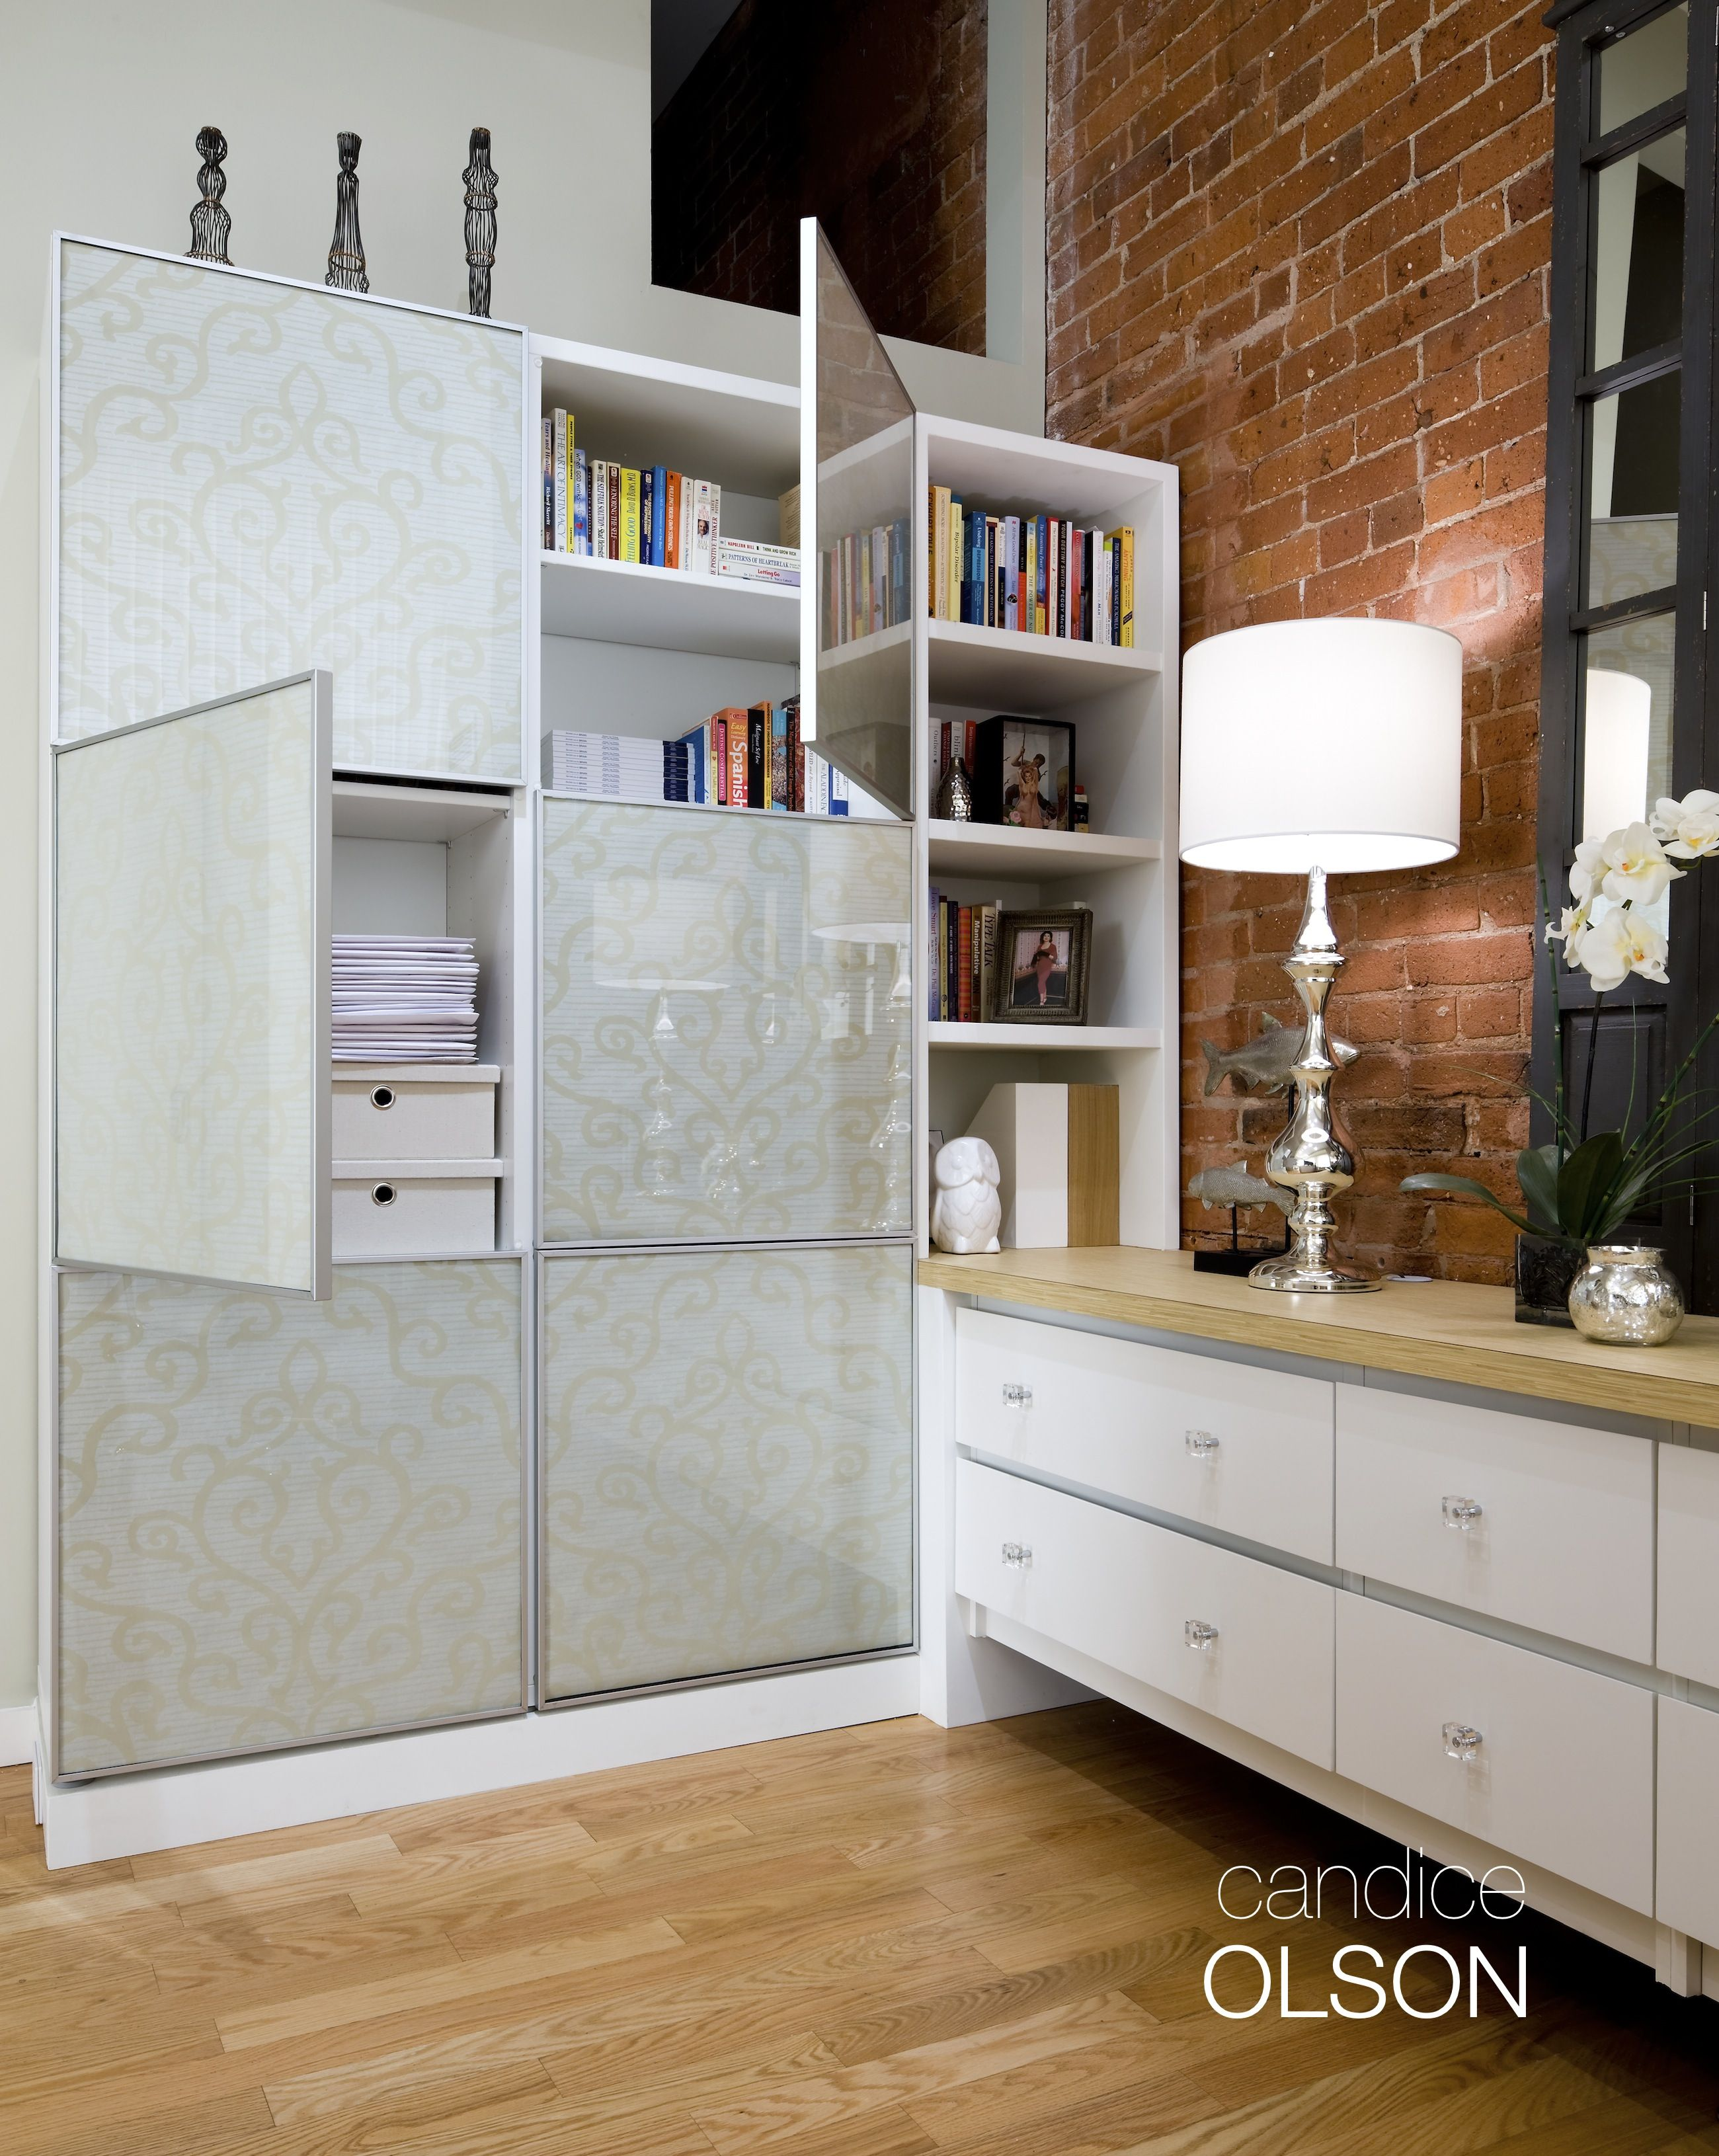 LOFT OFFICE 3: Functional and beautiful- this storage unit is sleek, requiring a small footprint while offering ample floor to ceiling storage. #candiceolson